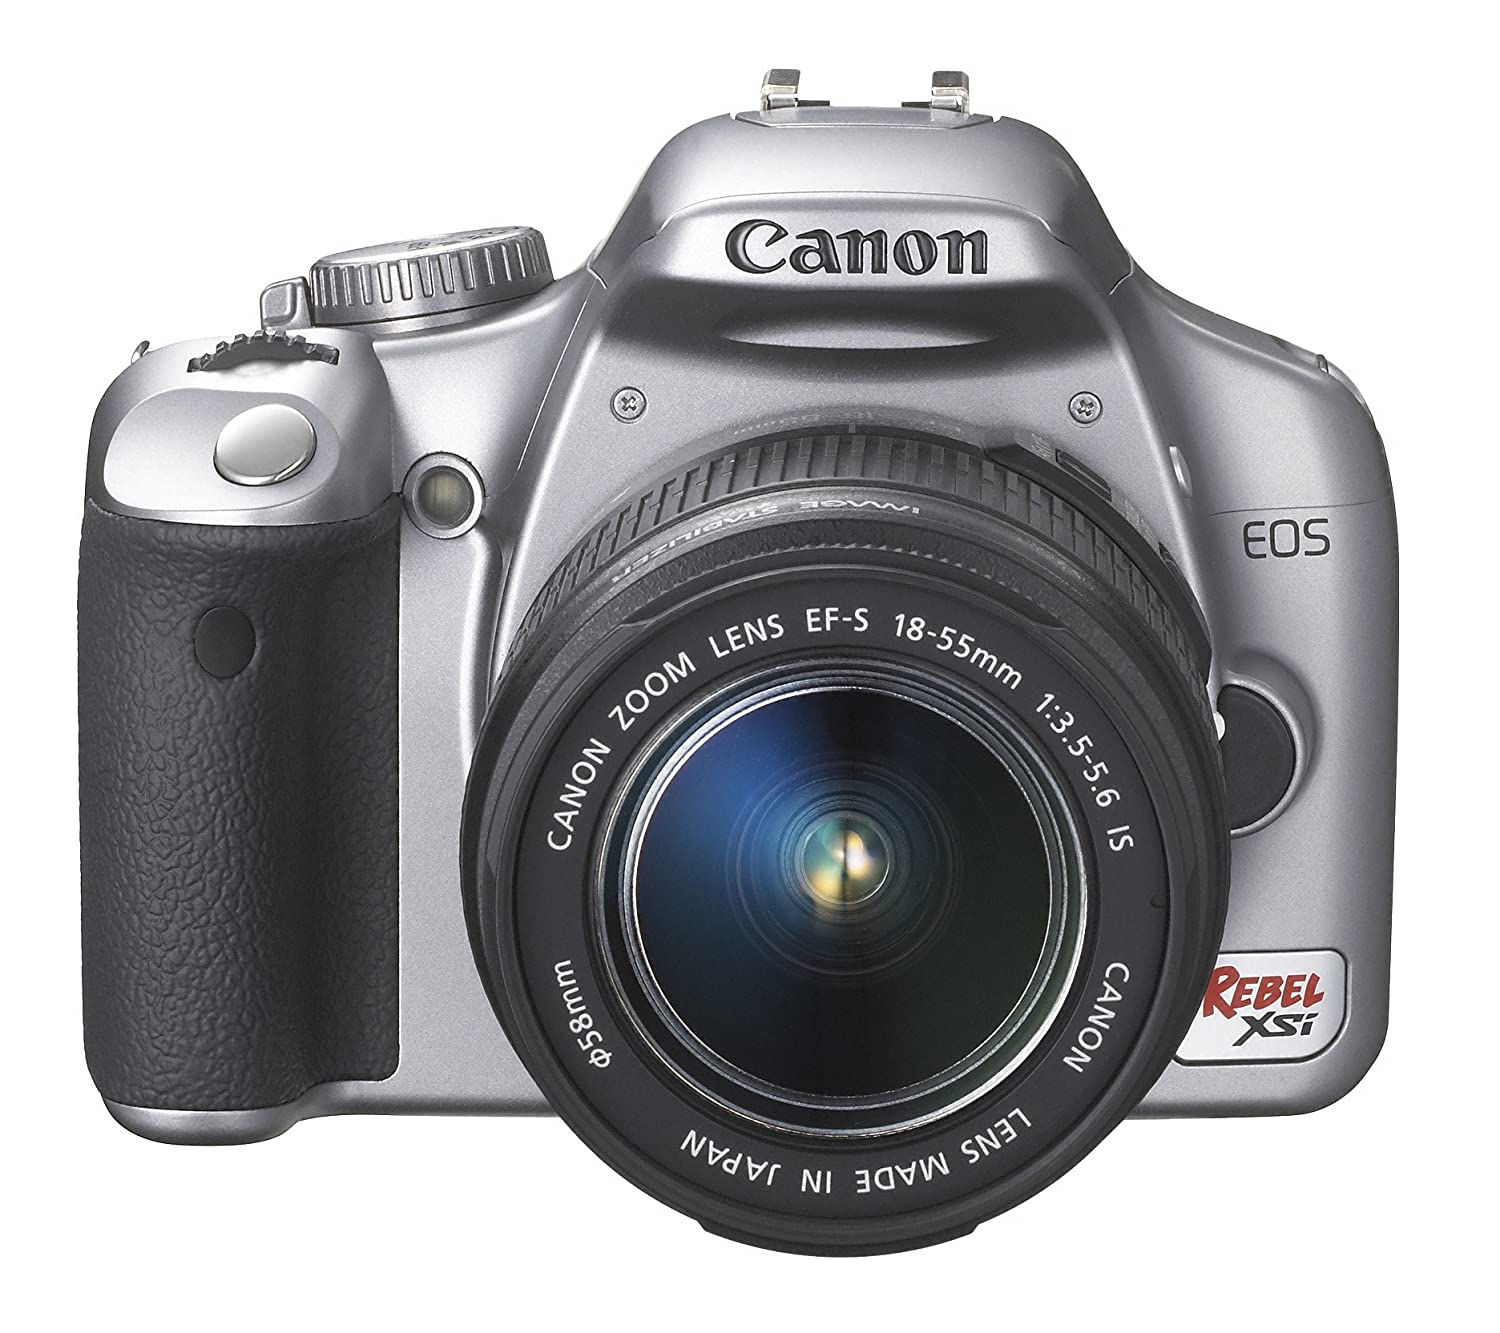 CANON EOS REBEL XSI EF-S 18-55IS KIT WINDOWS 8 DRIVER DOWNLOAD